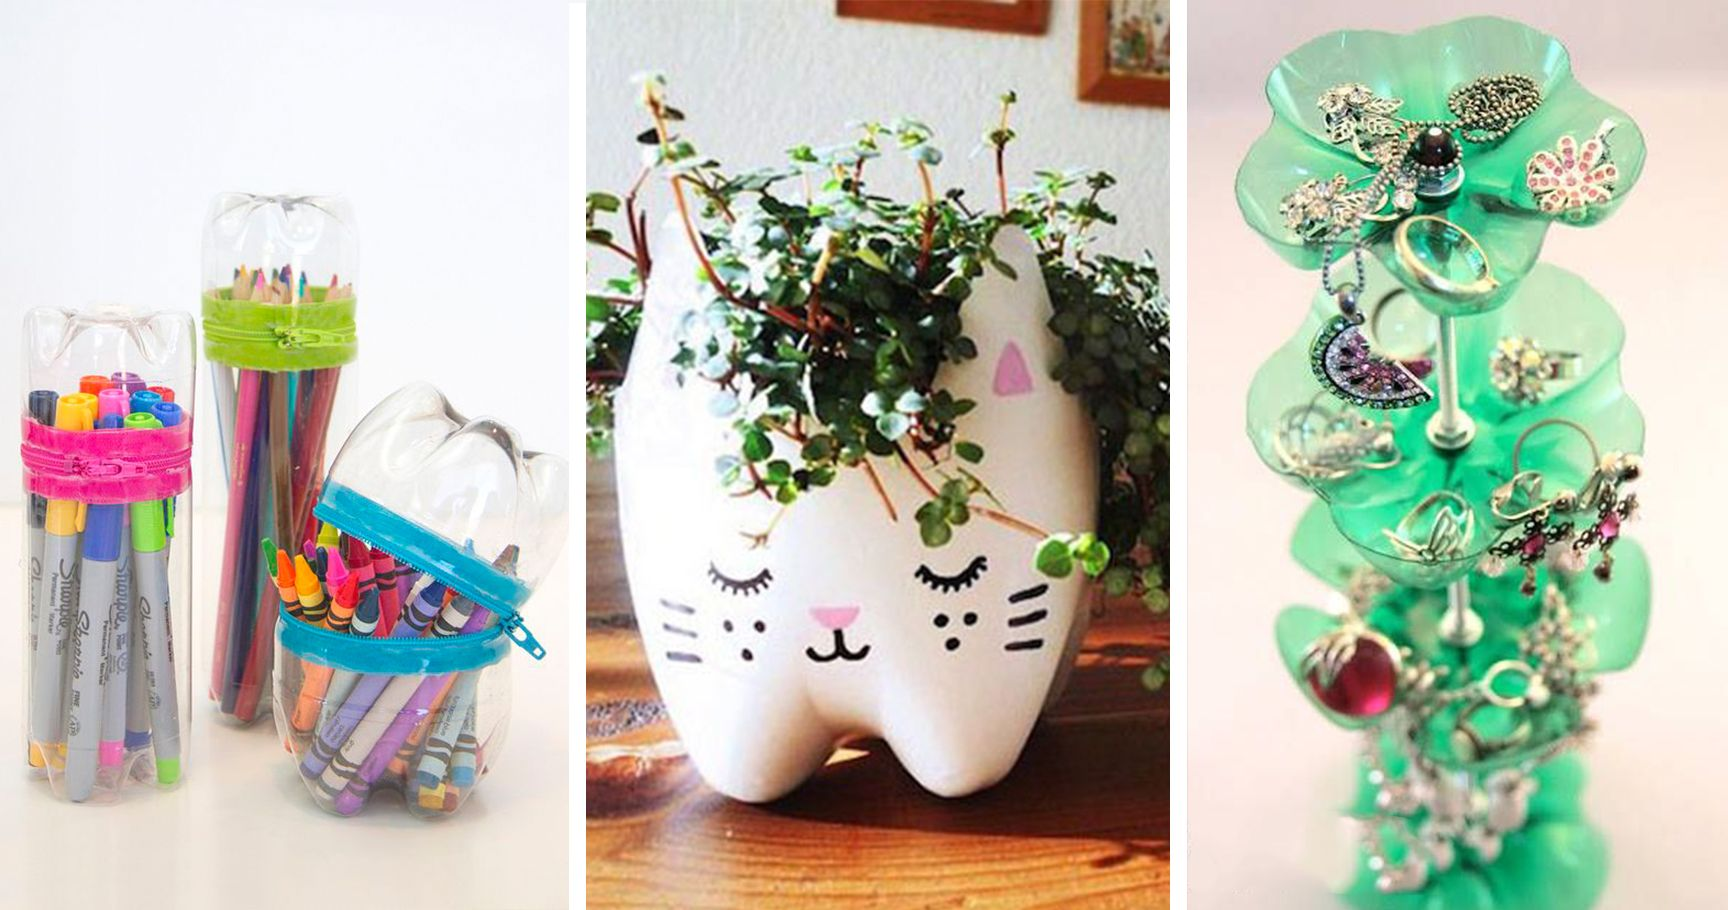 10 creative diy projects to reuse plastic bottles thethings reviewsmspy